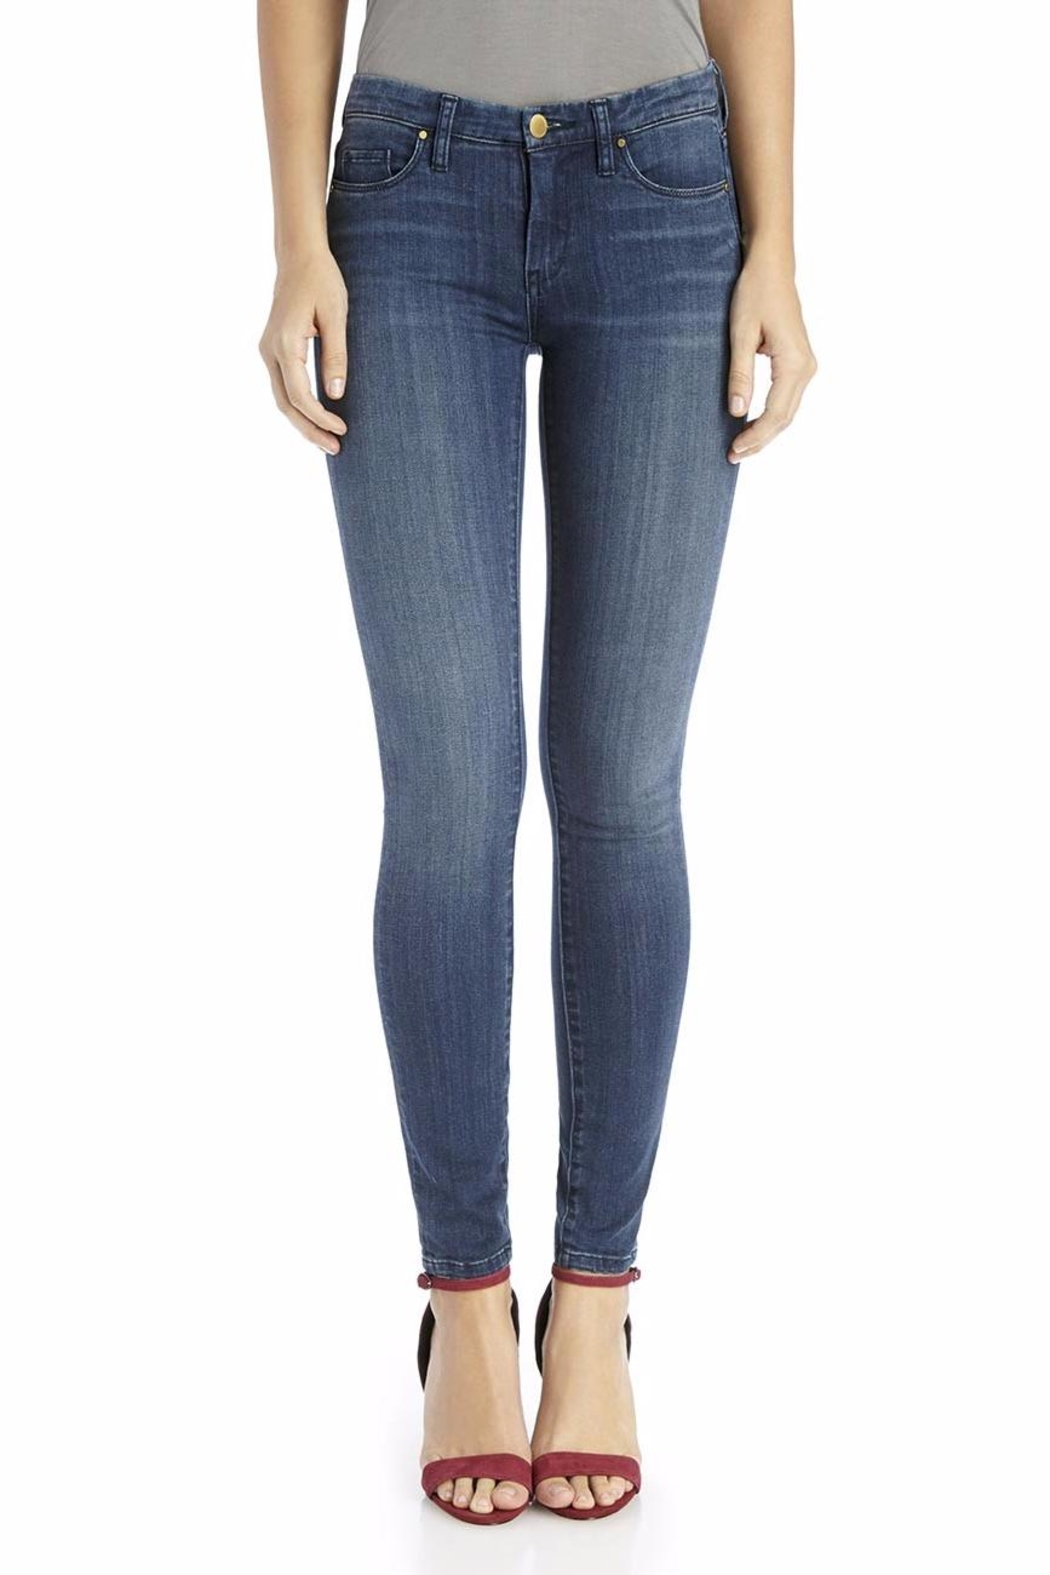 BlankNYC Classic Skinny Jean - Front Cropped Image